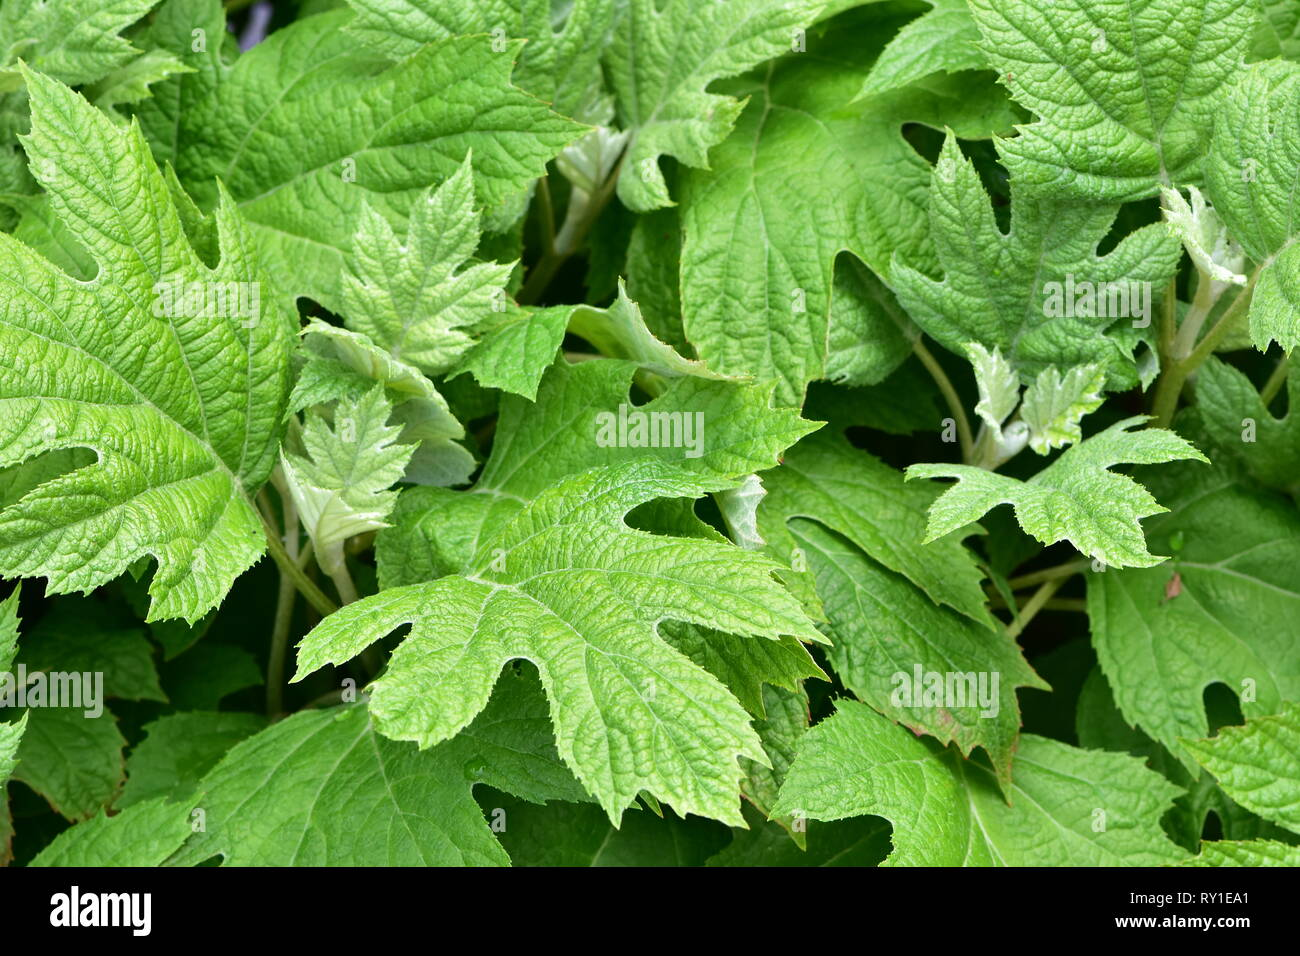 Dense leaves pattern with surface structure and simple palmate venation with brochidodromous second‐order veins. - Stock Image